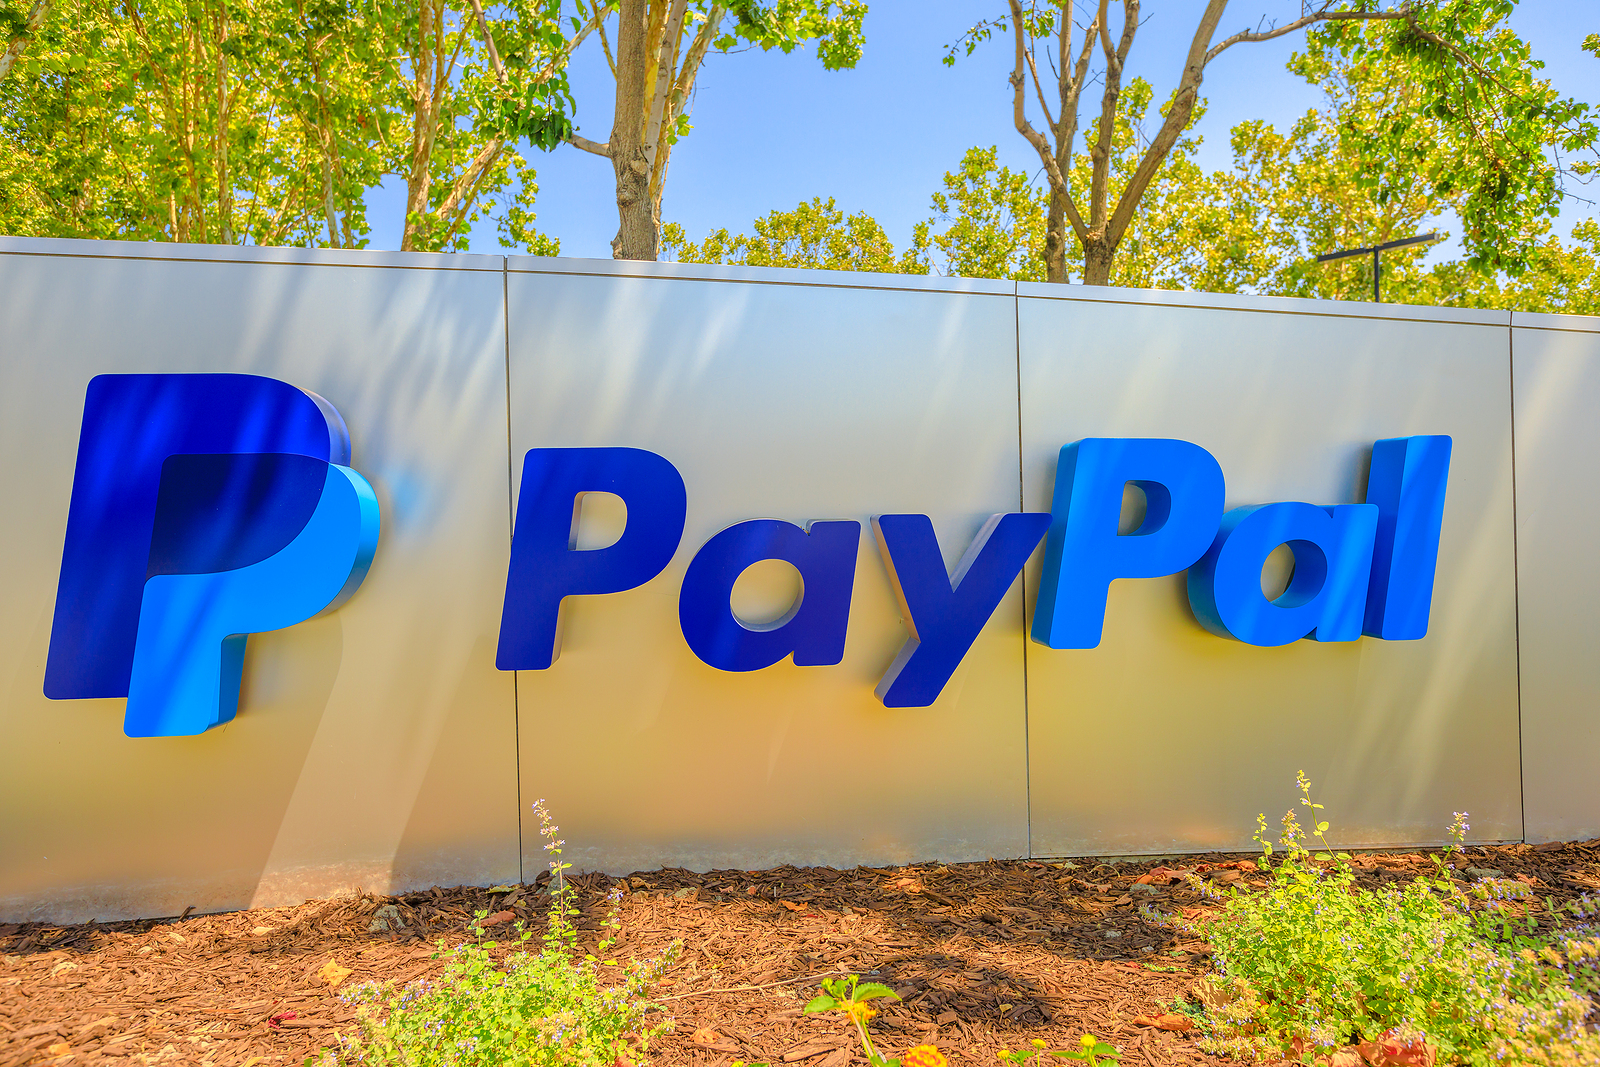 Paypal PYPL Stock news and analysis